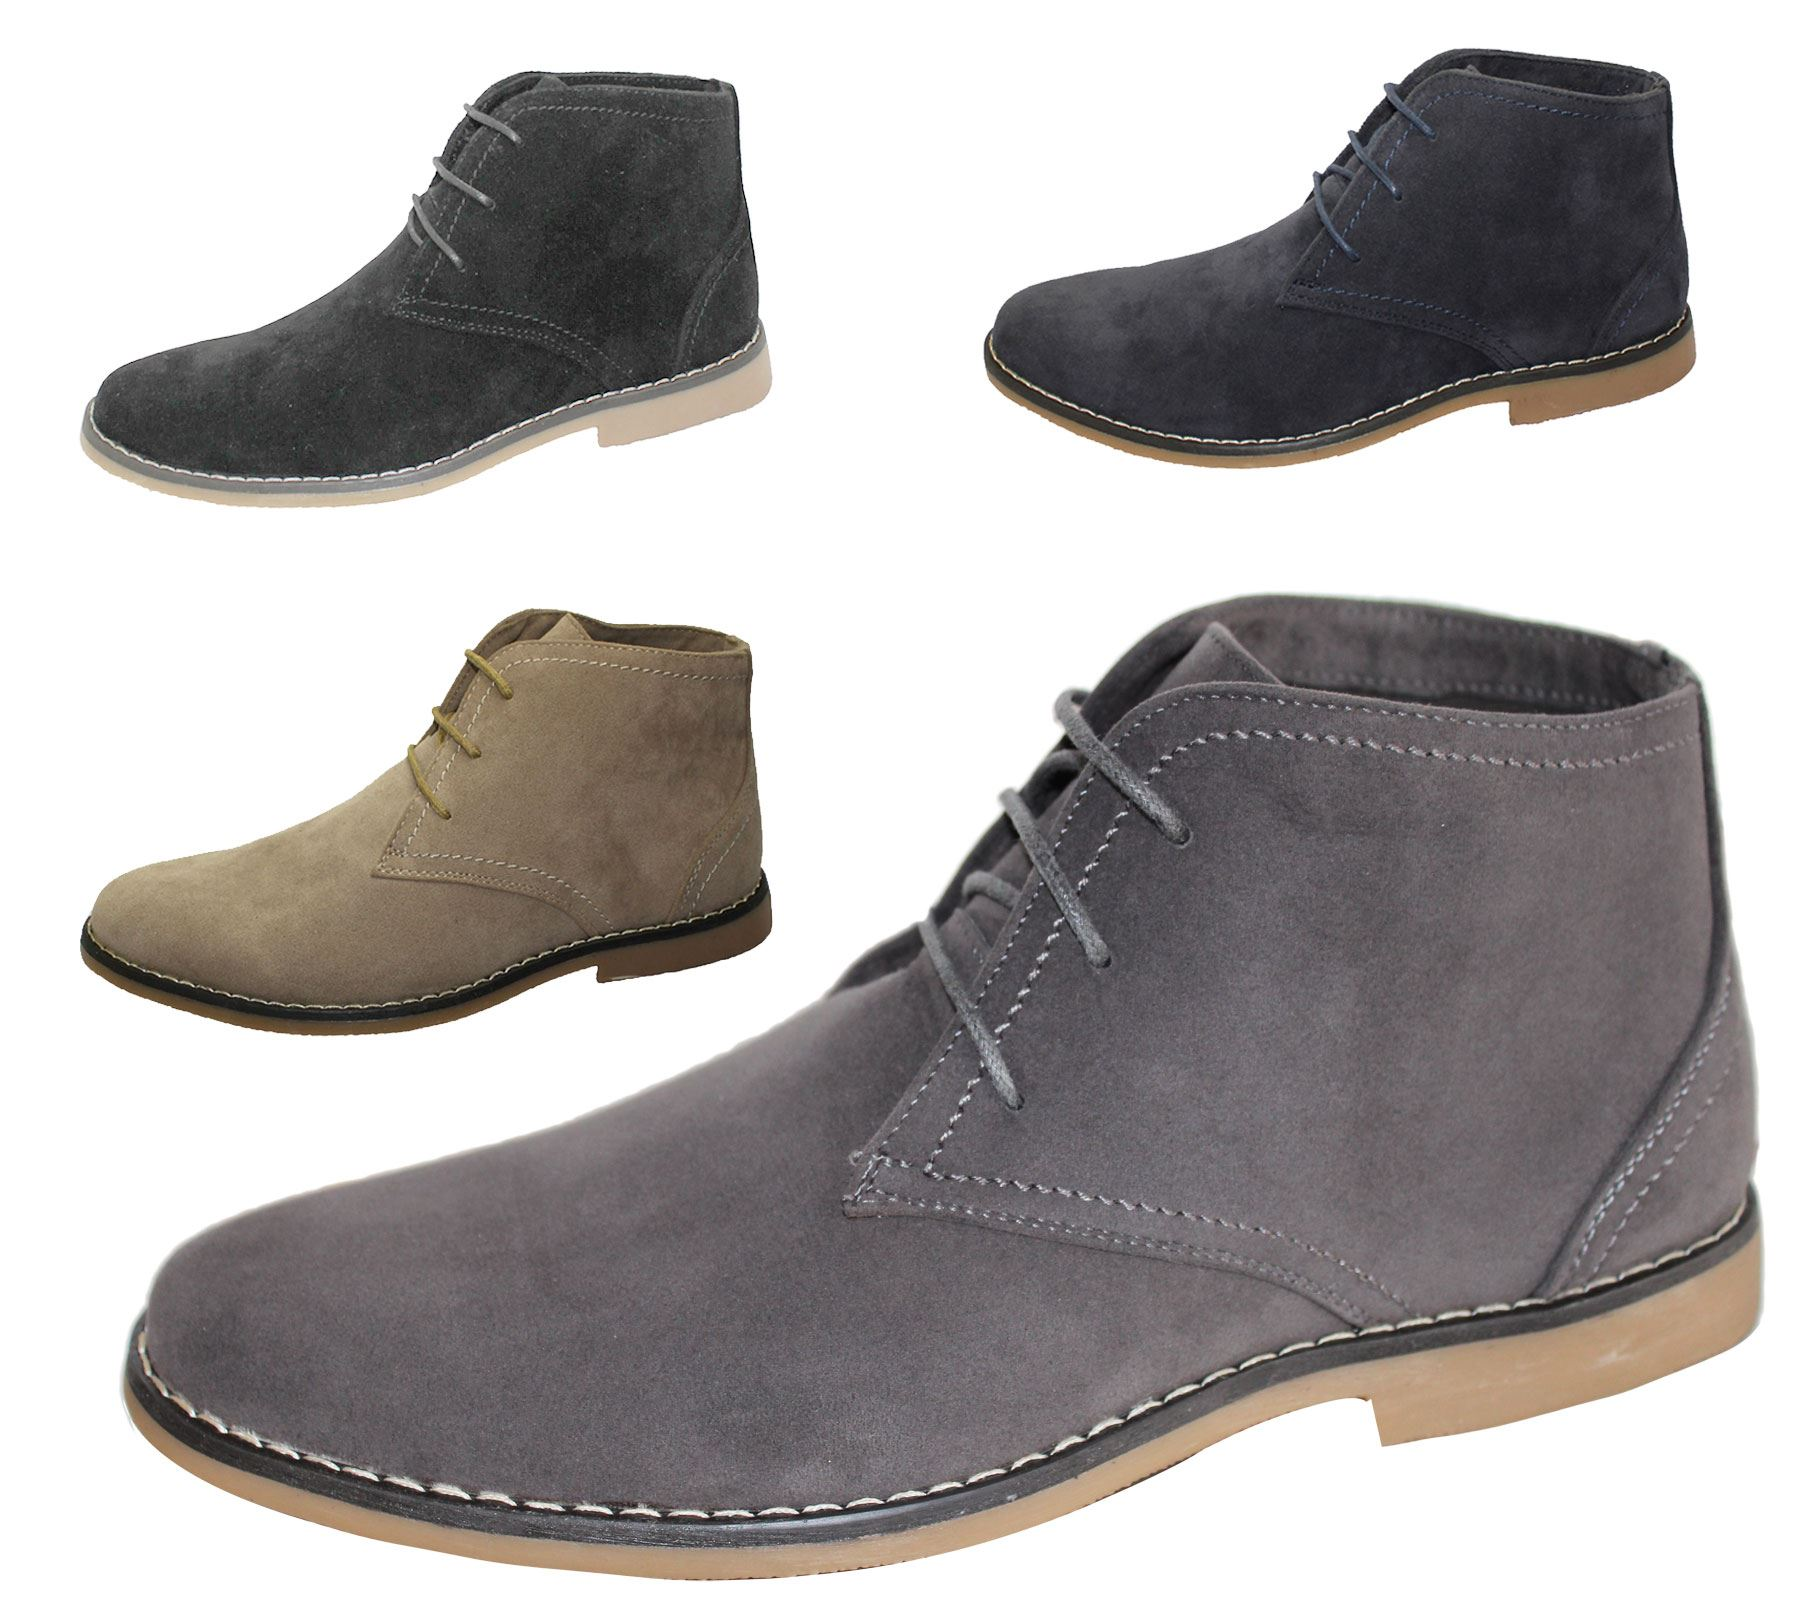 Mens Synthetic Suede Desert Boots Casual Lace Up Winter Ankle Classic Shoes  Size